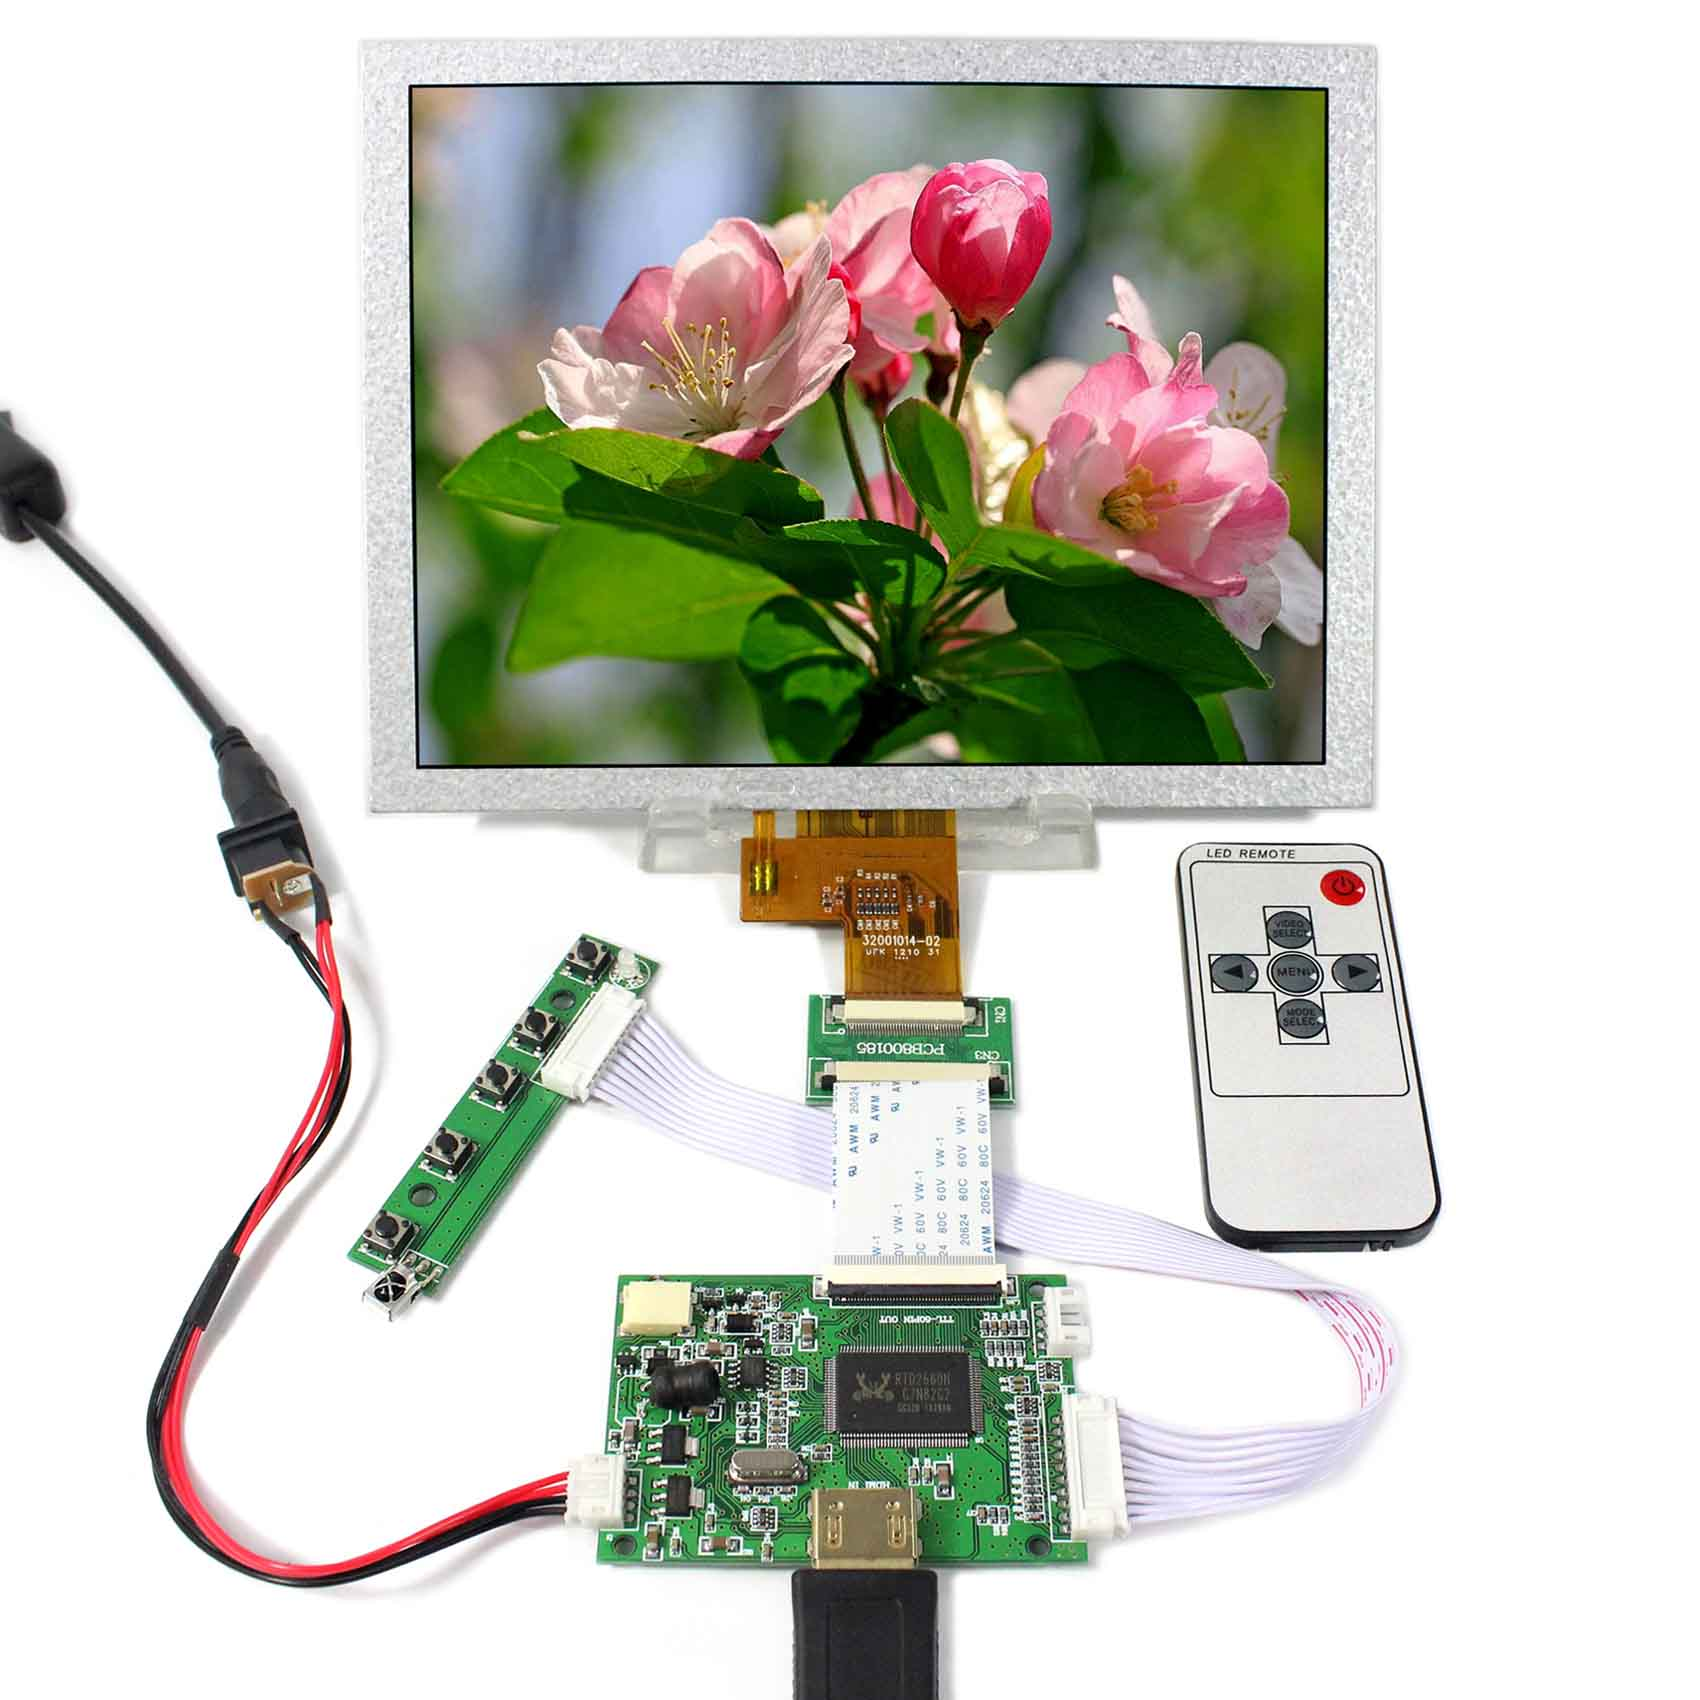 HDMI LCD Controller Board+8inch EJ080NA-04C 1024x768 LCD Screen hdmi lcd controller board 8inch ej080na 05b 800x600 lcd screen